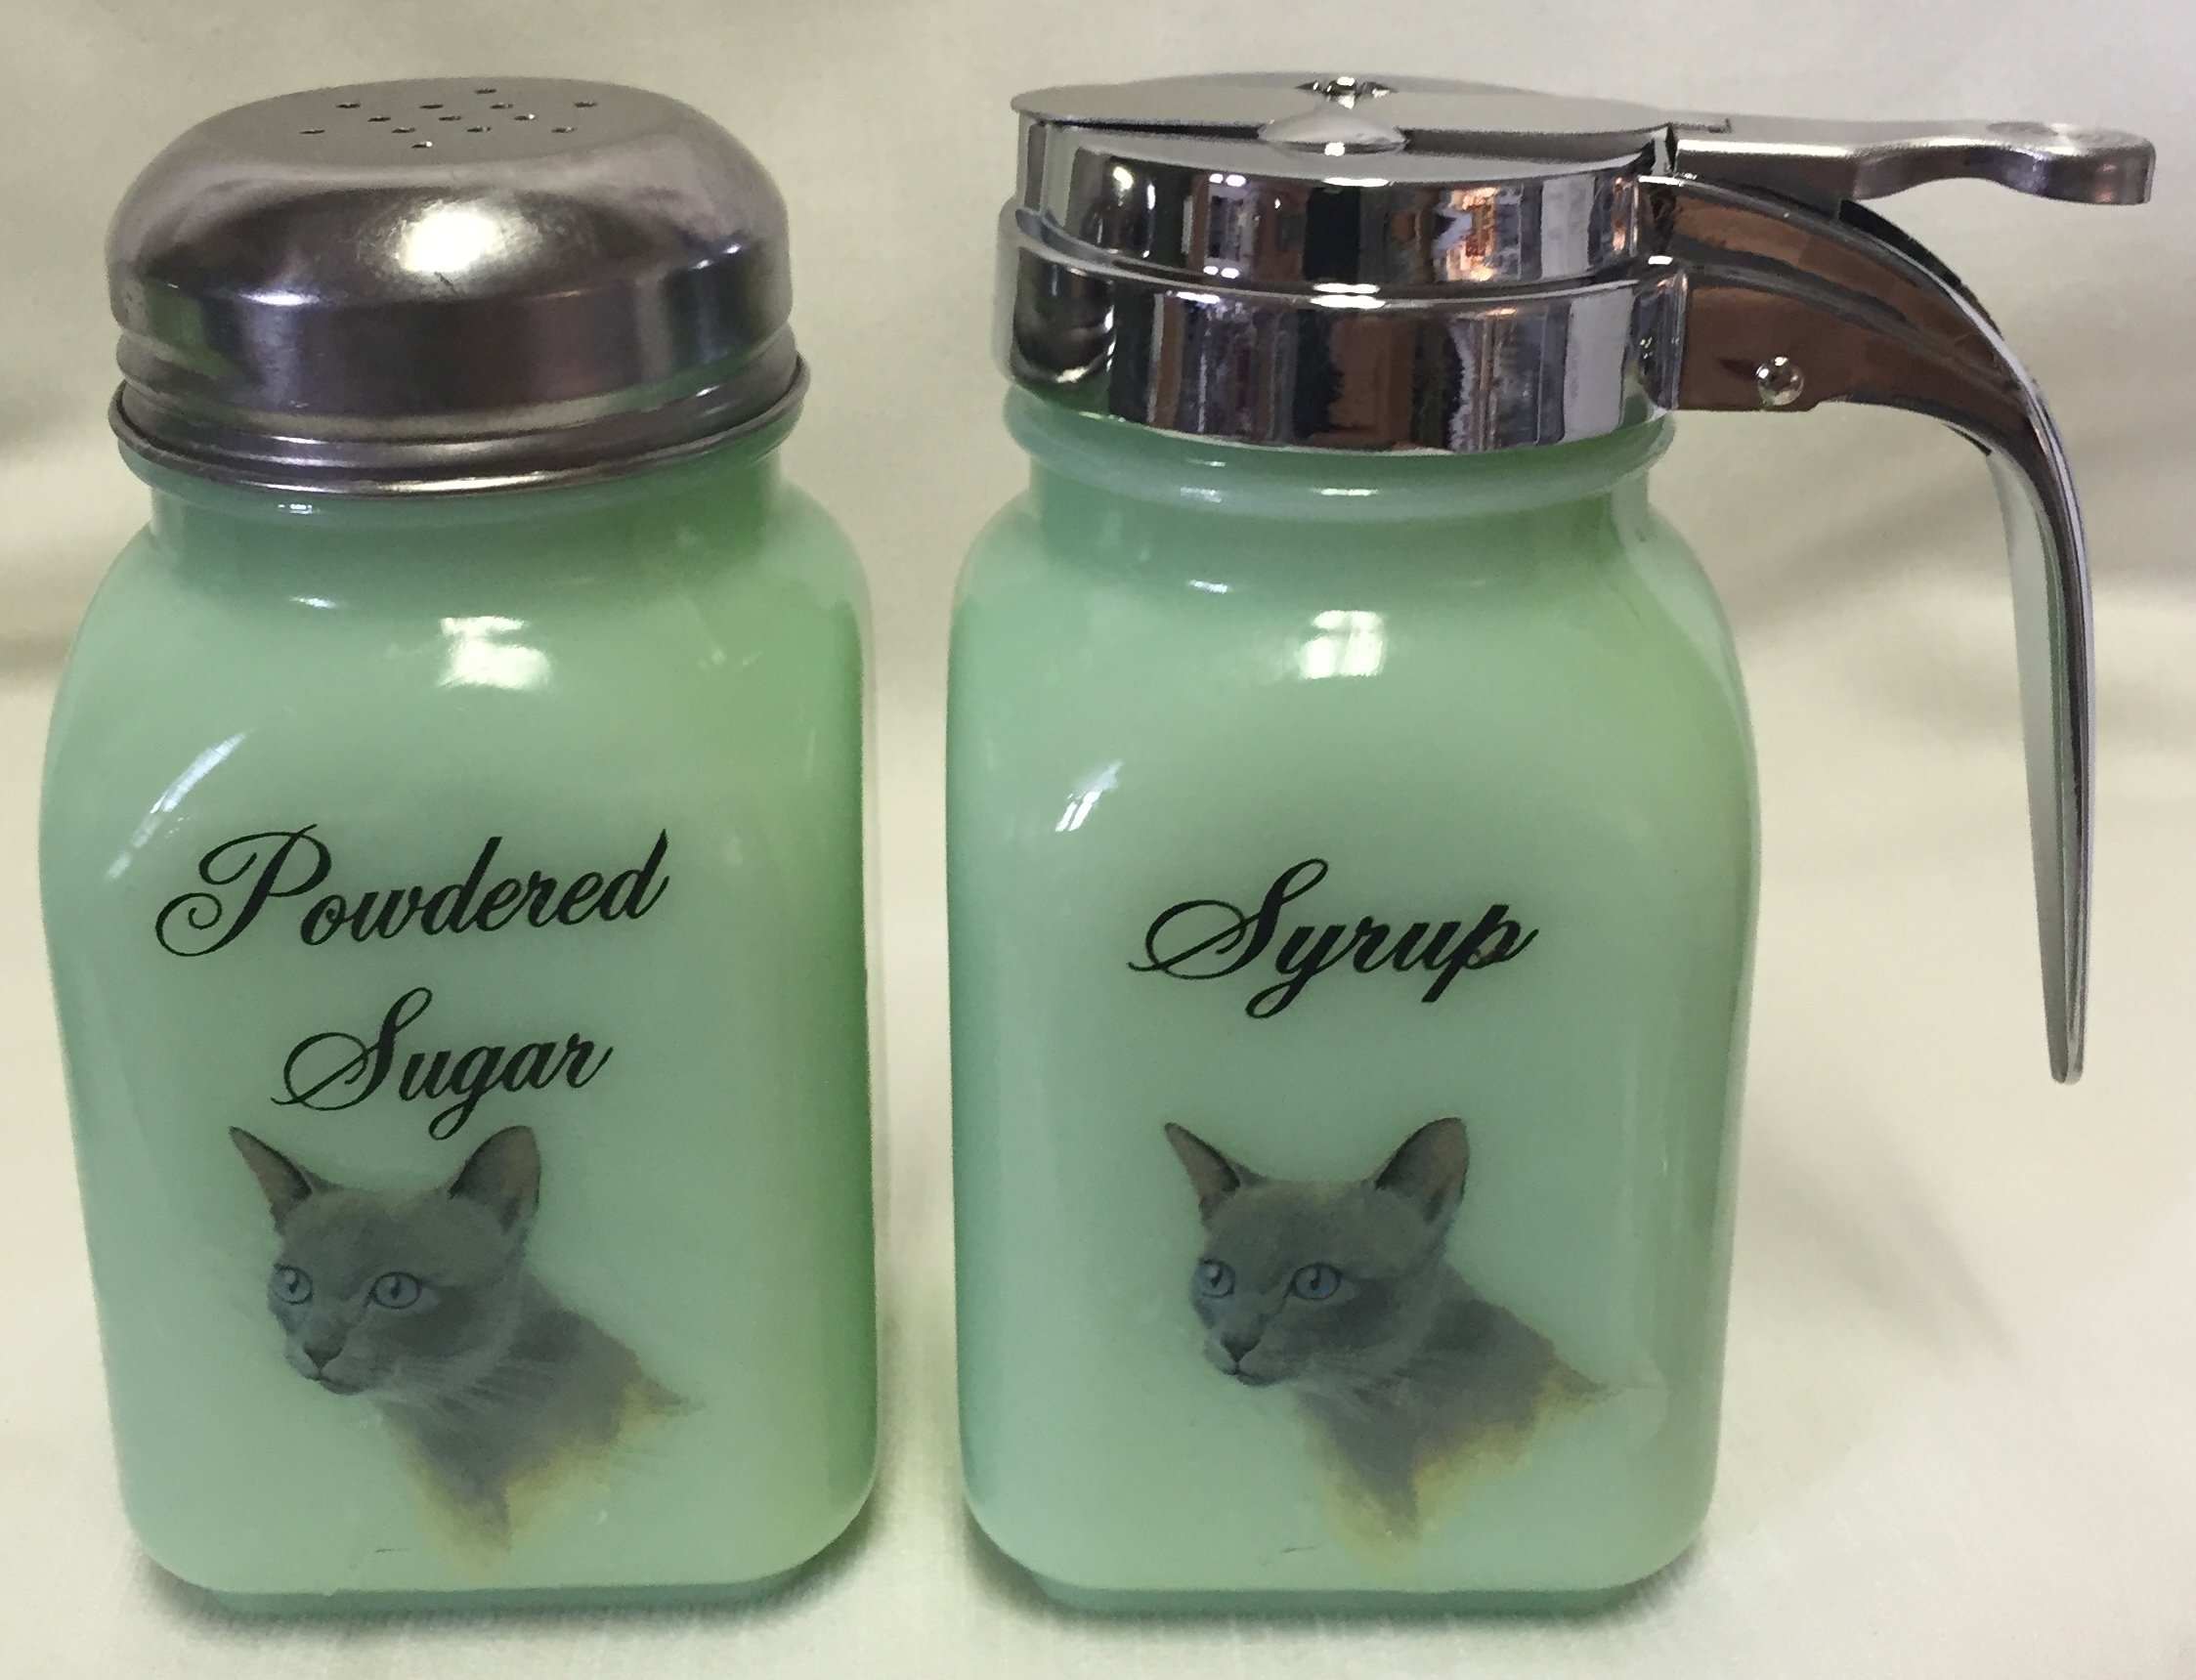 Breakfast Set - Syrup and Powdered Sugar - Cats - Glass - American Made (Tonkinois Bleu, Jade) by Rosso Glass